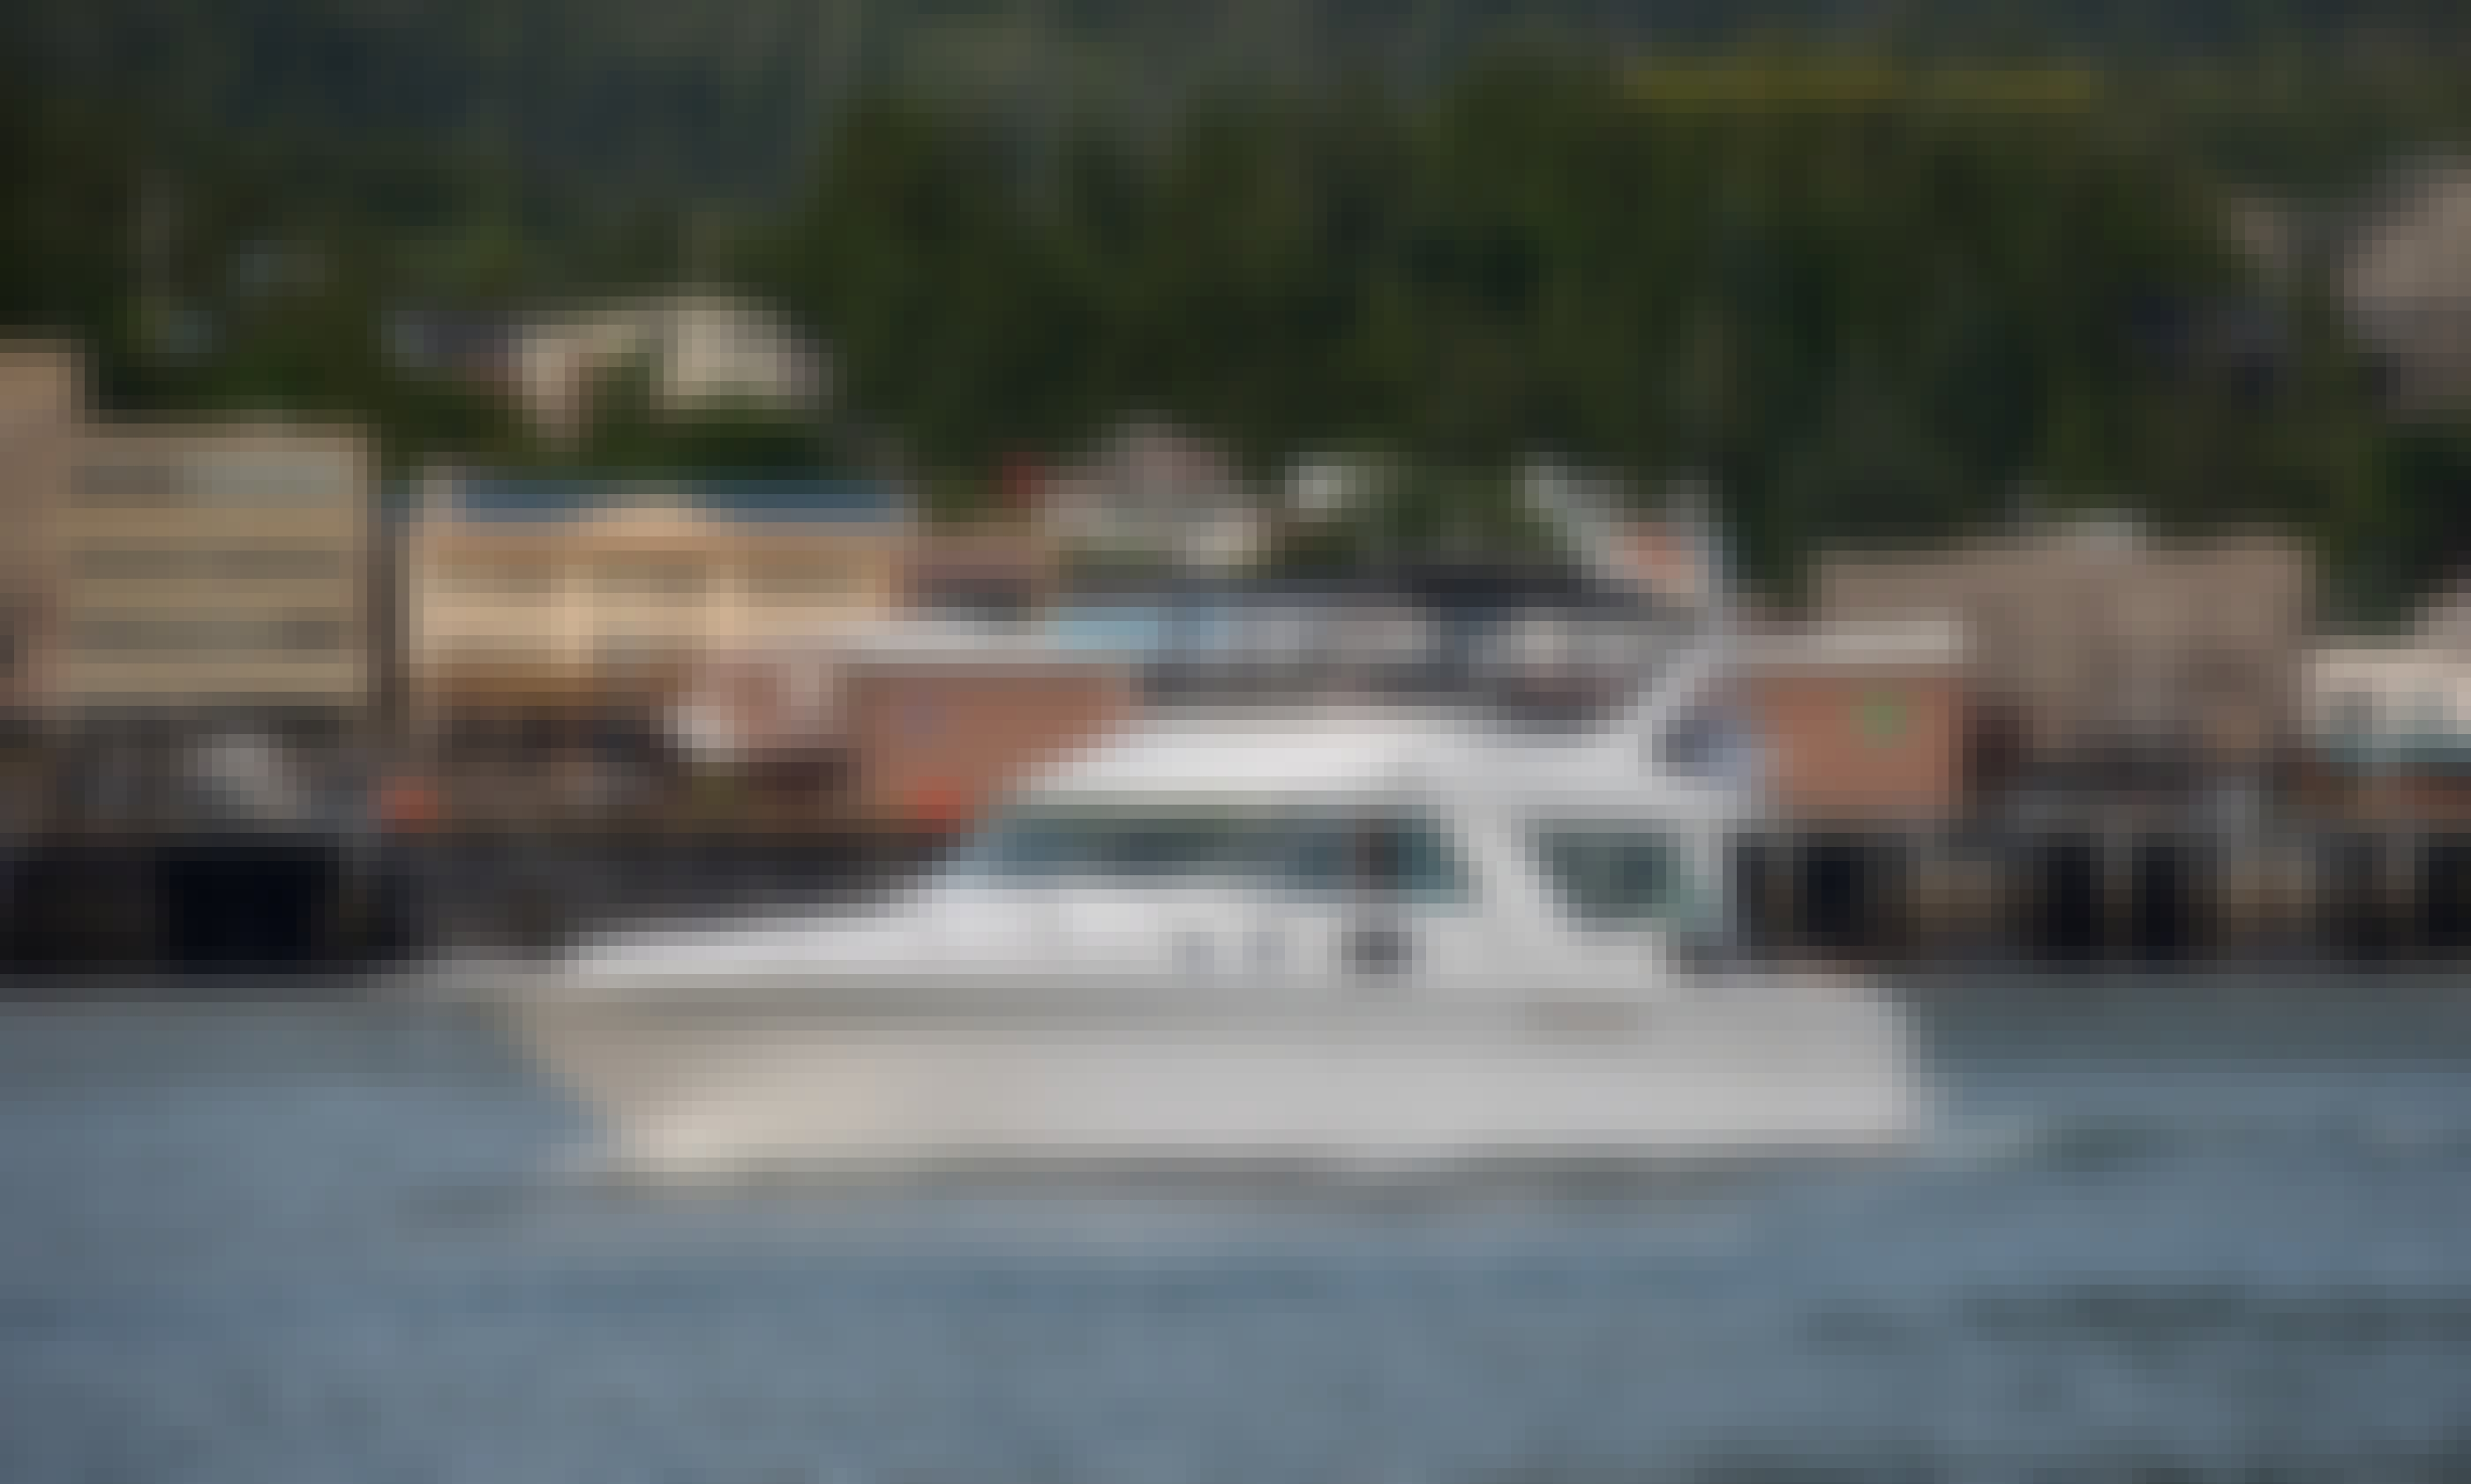 Motor Yacht sleep aboard rental in Ketchikan, Alaska